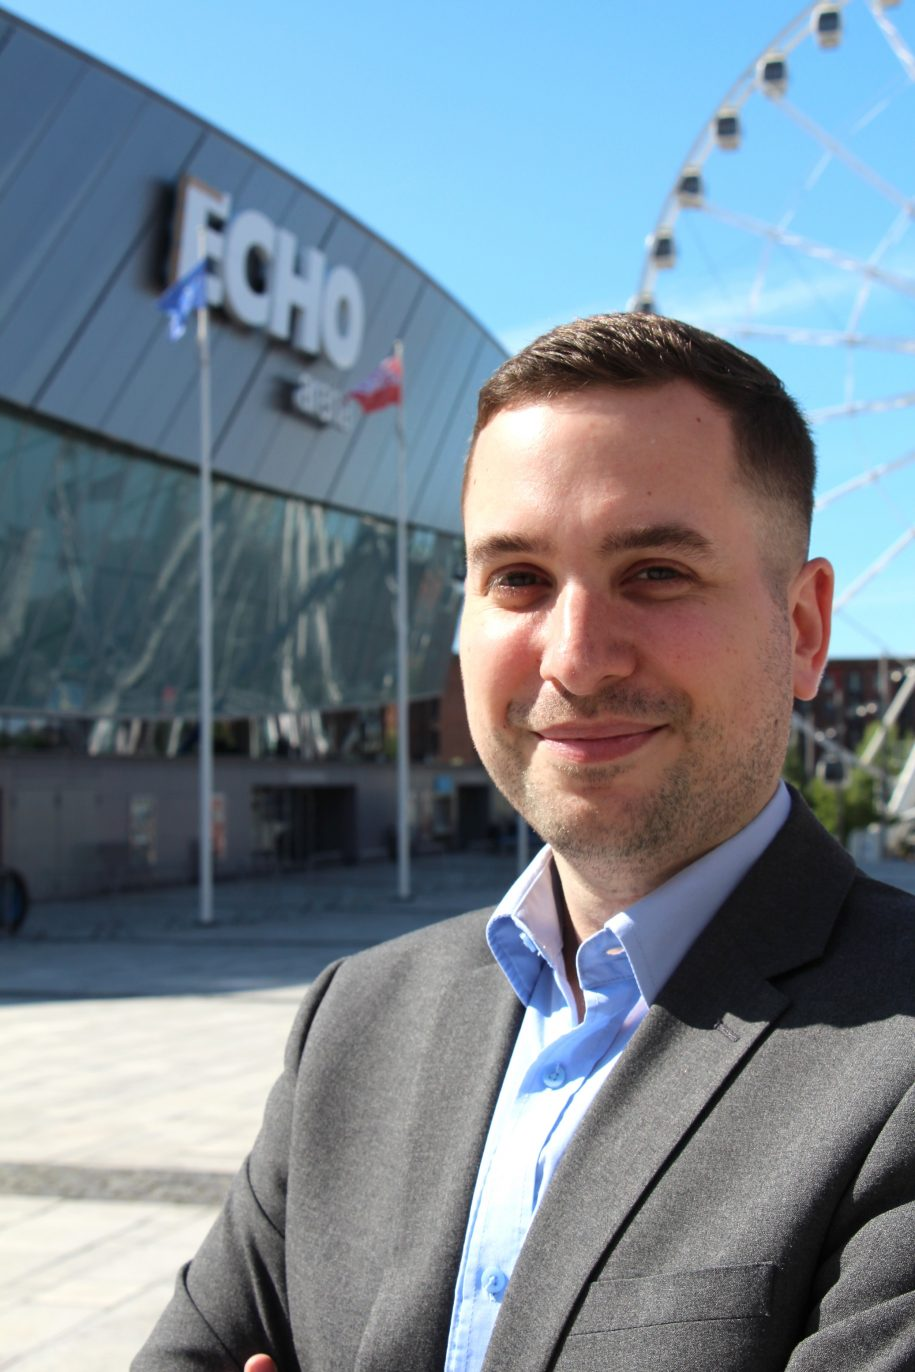 echo arena appoints new concert s coordinator access all areas owen takes up the role from his previous position as client account manager in the venue s ticketing department he will be responsible for liaising